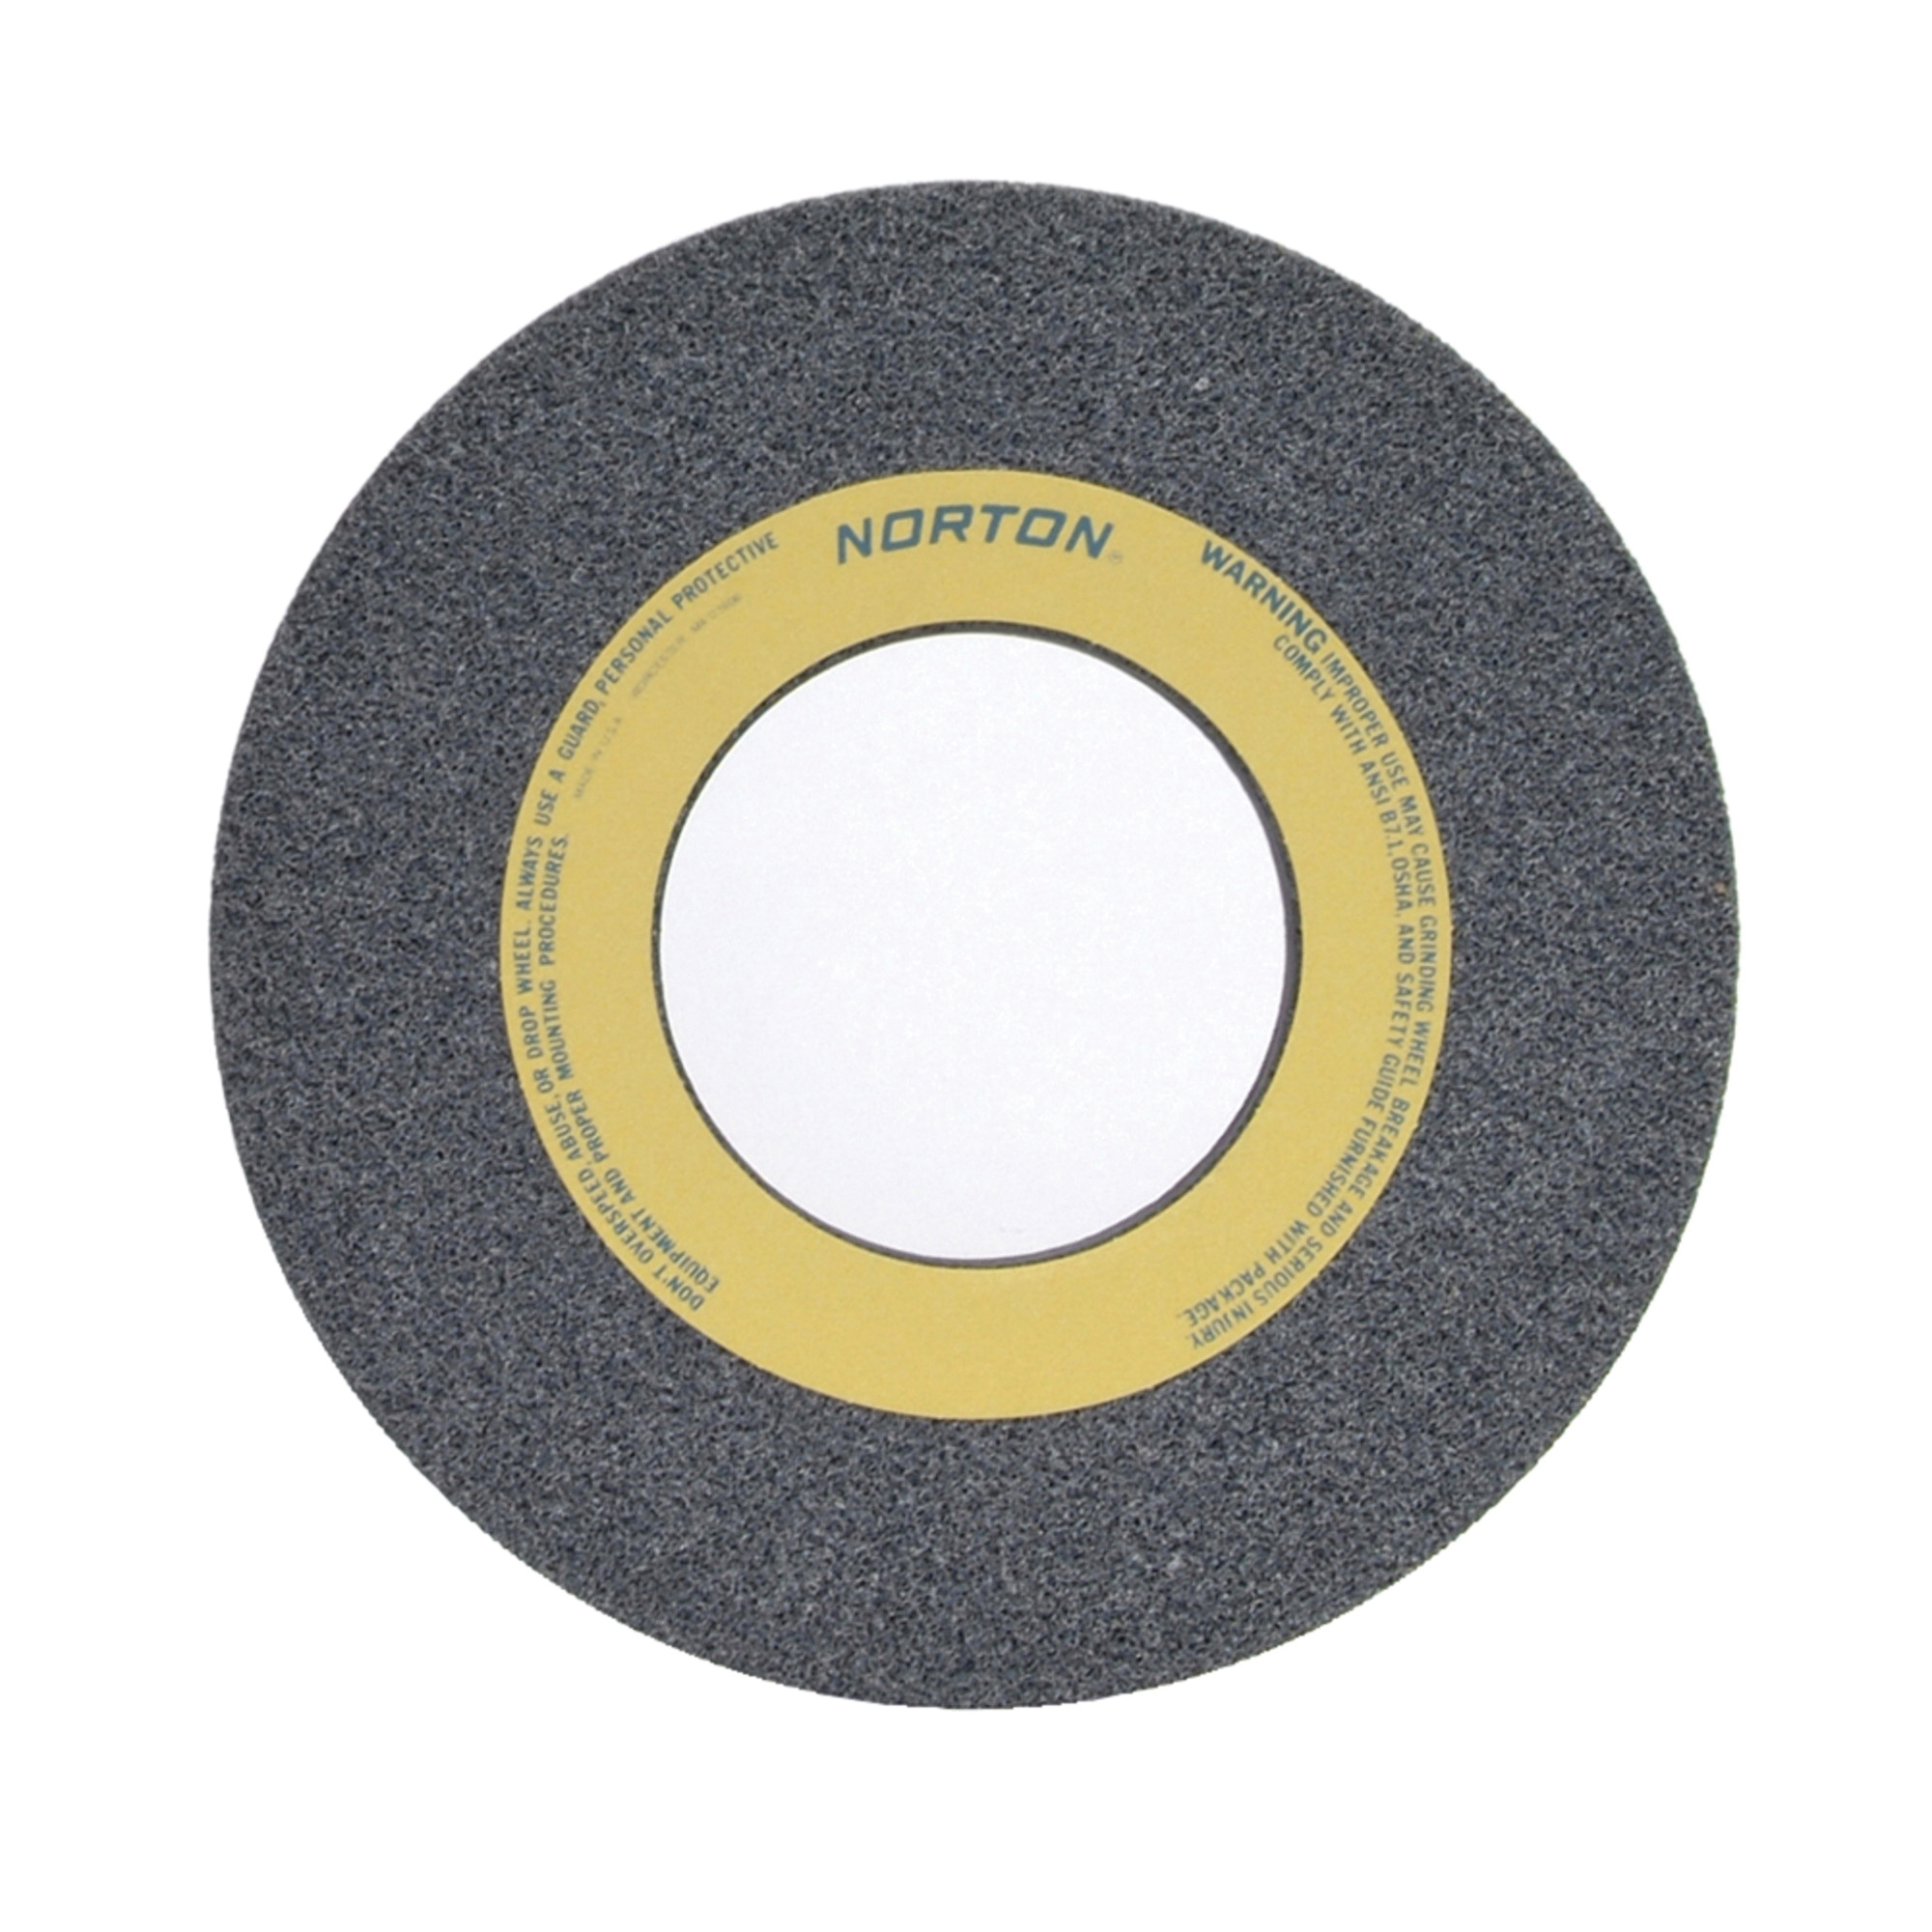 Norton® 66253363761 32A Straight Toolroom Wheel, 14 in Dia x 1/2 in THK, 5 in Center Hole, 60 Grit, Aluminum Oxide Abrasive